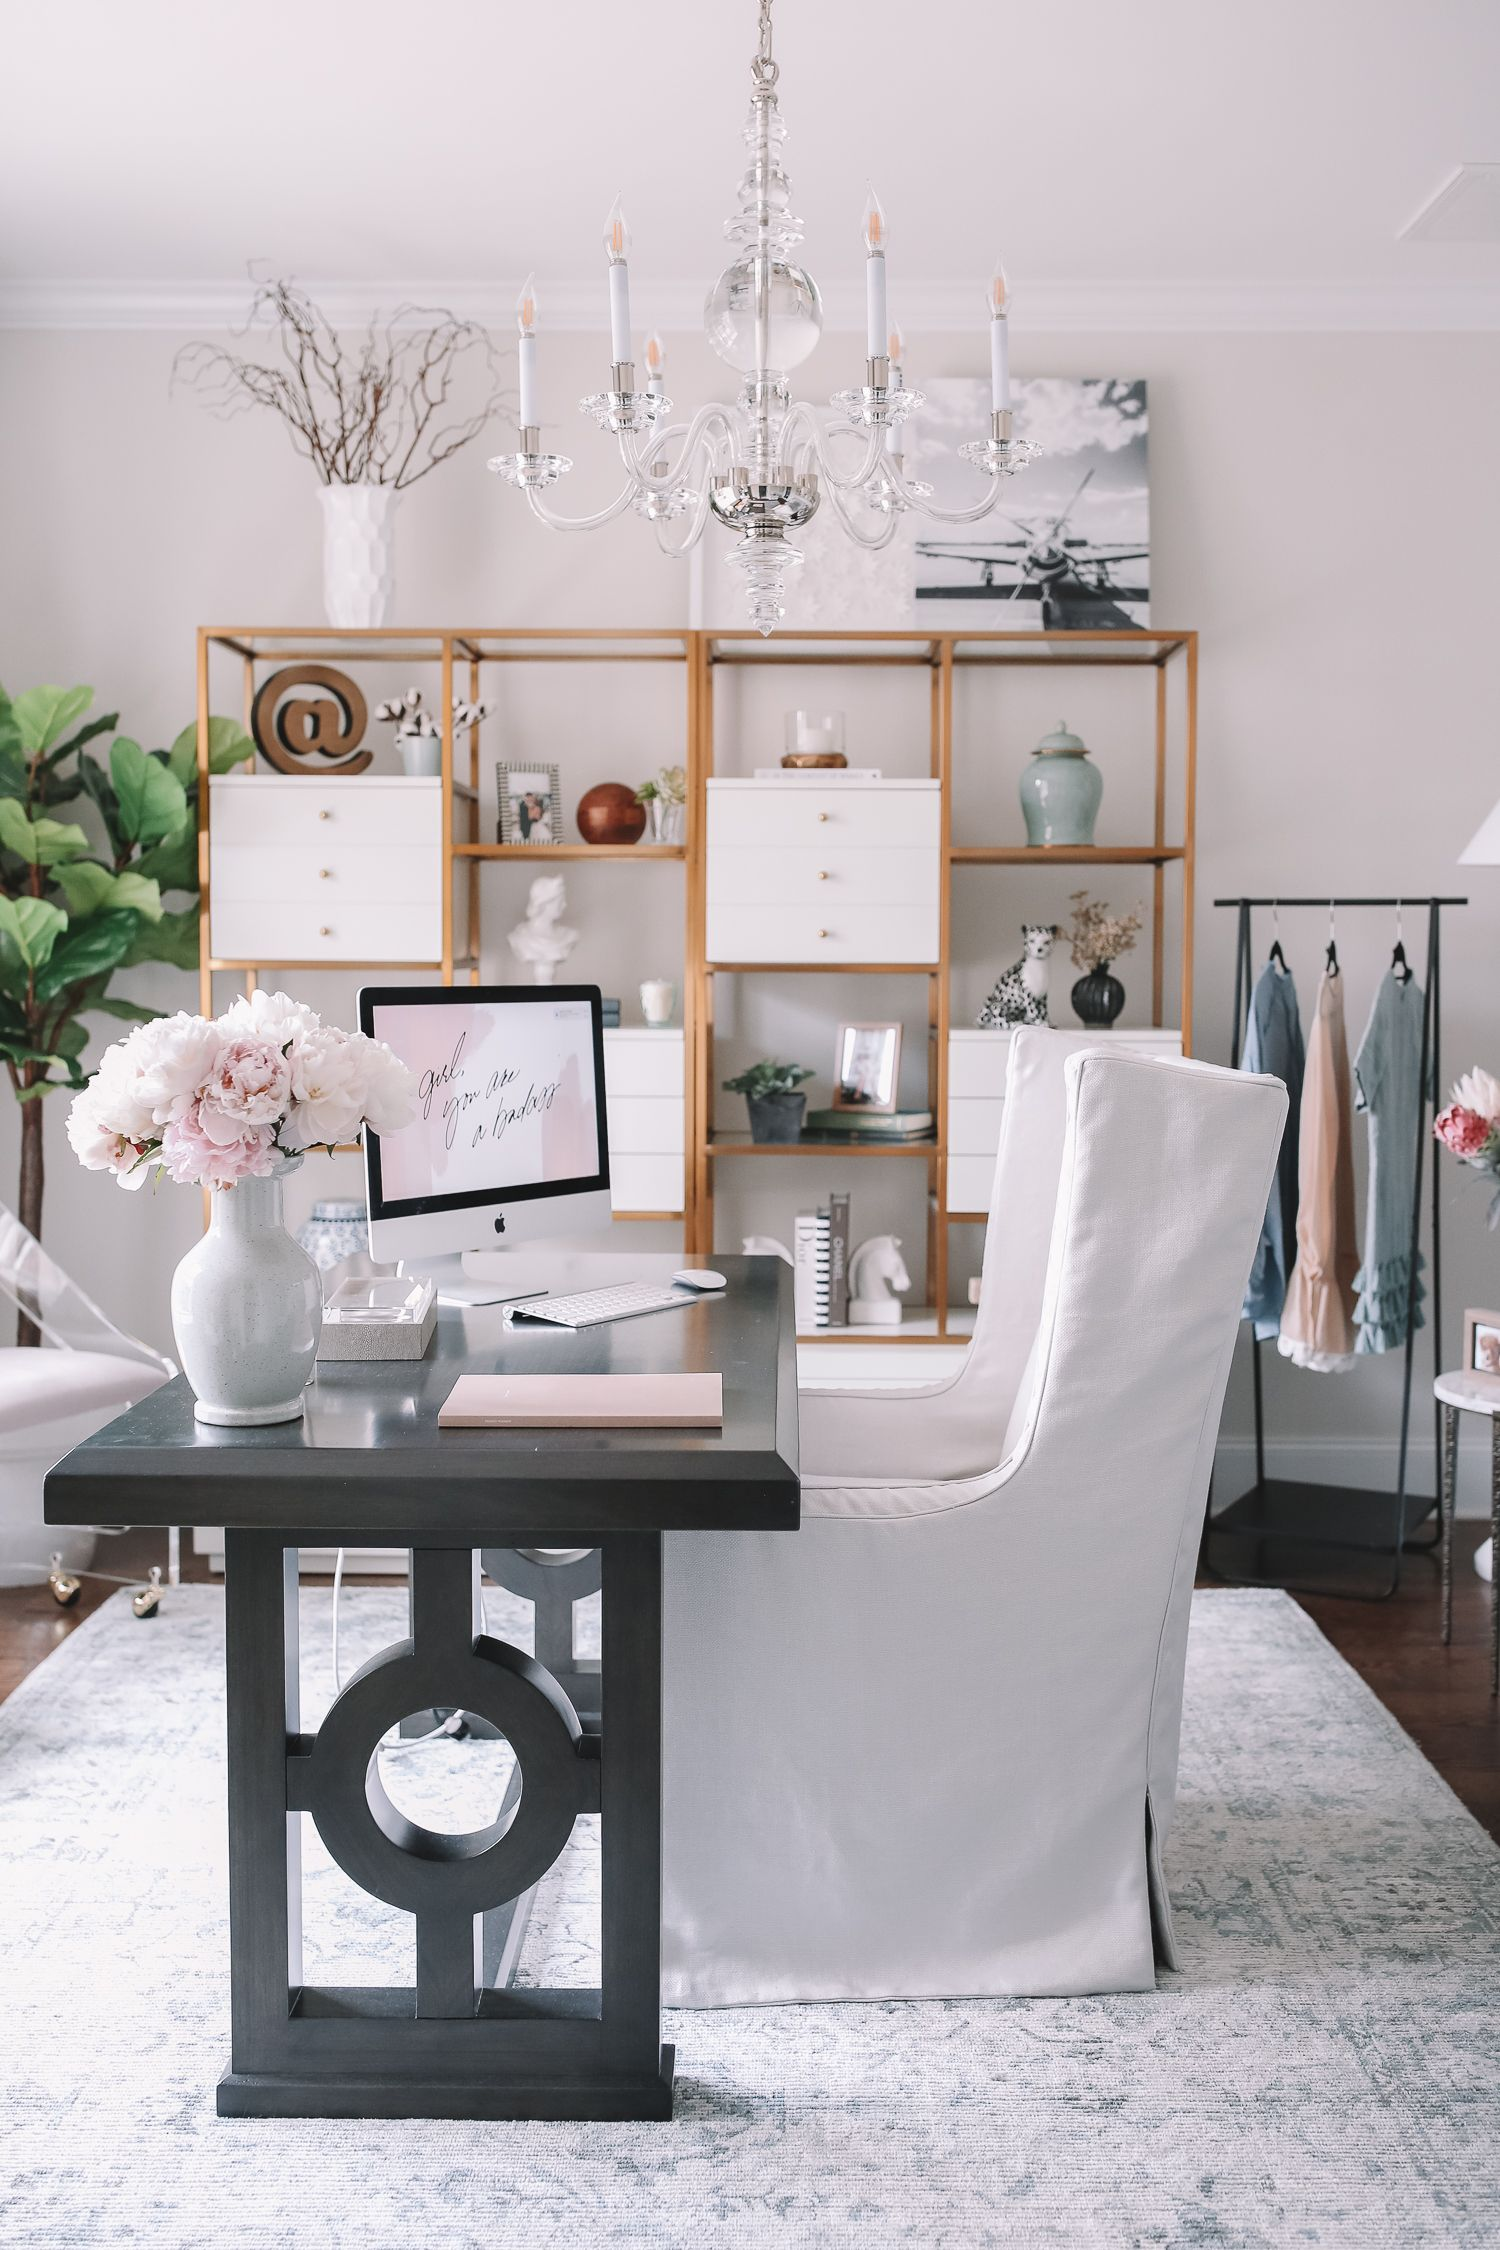 20 DIY Home Office Decor Ideas   Best Home Office Decor Projects